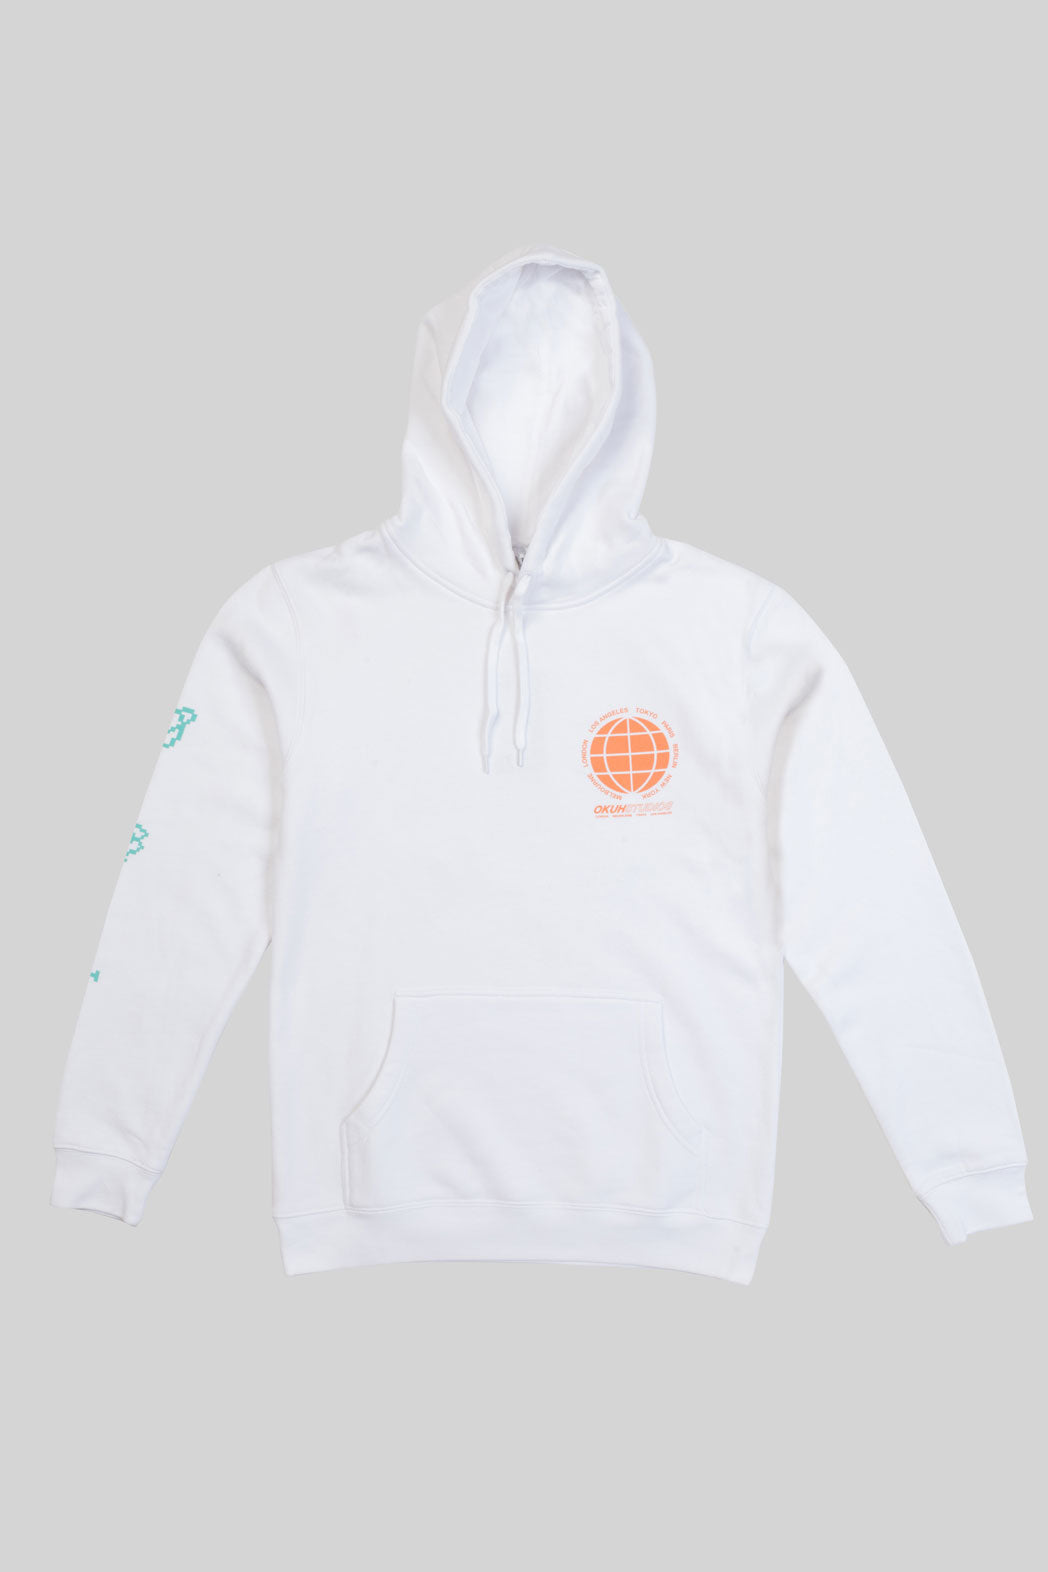 White Global Dance Hoodie Sweatshirt - okuhstudios